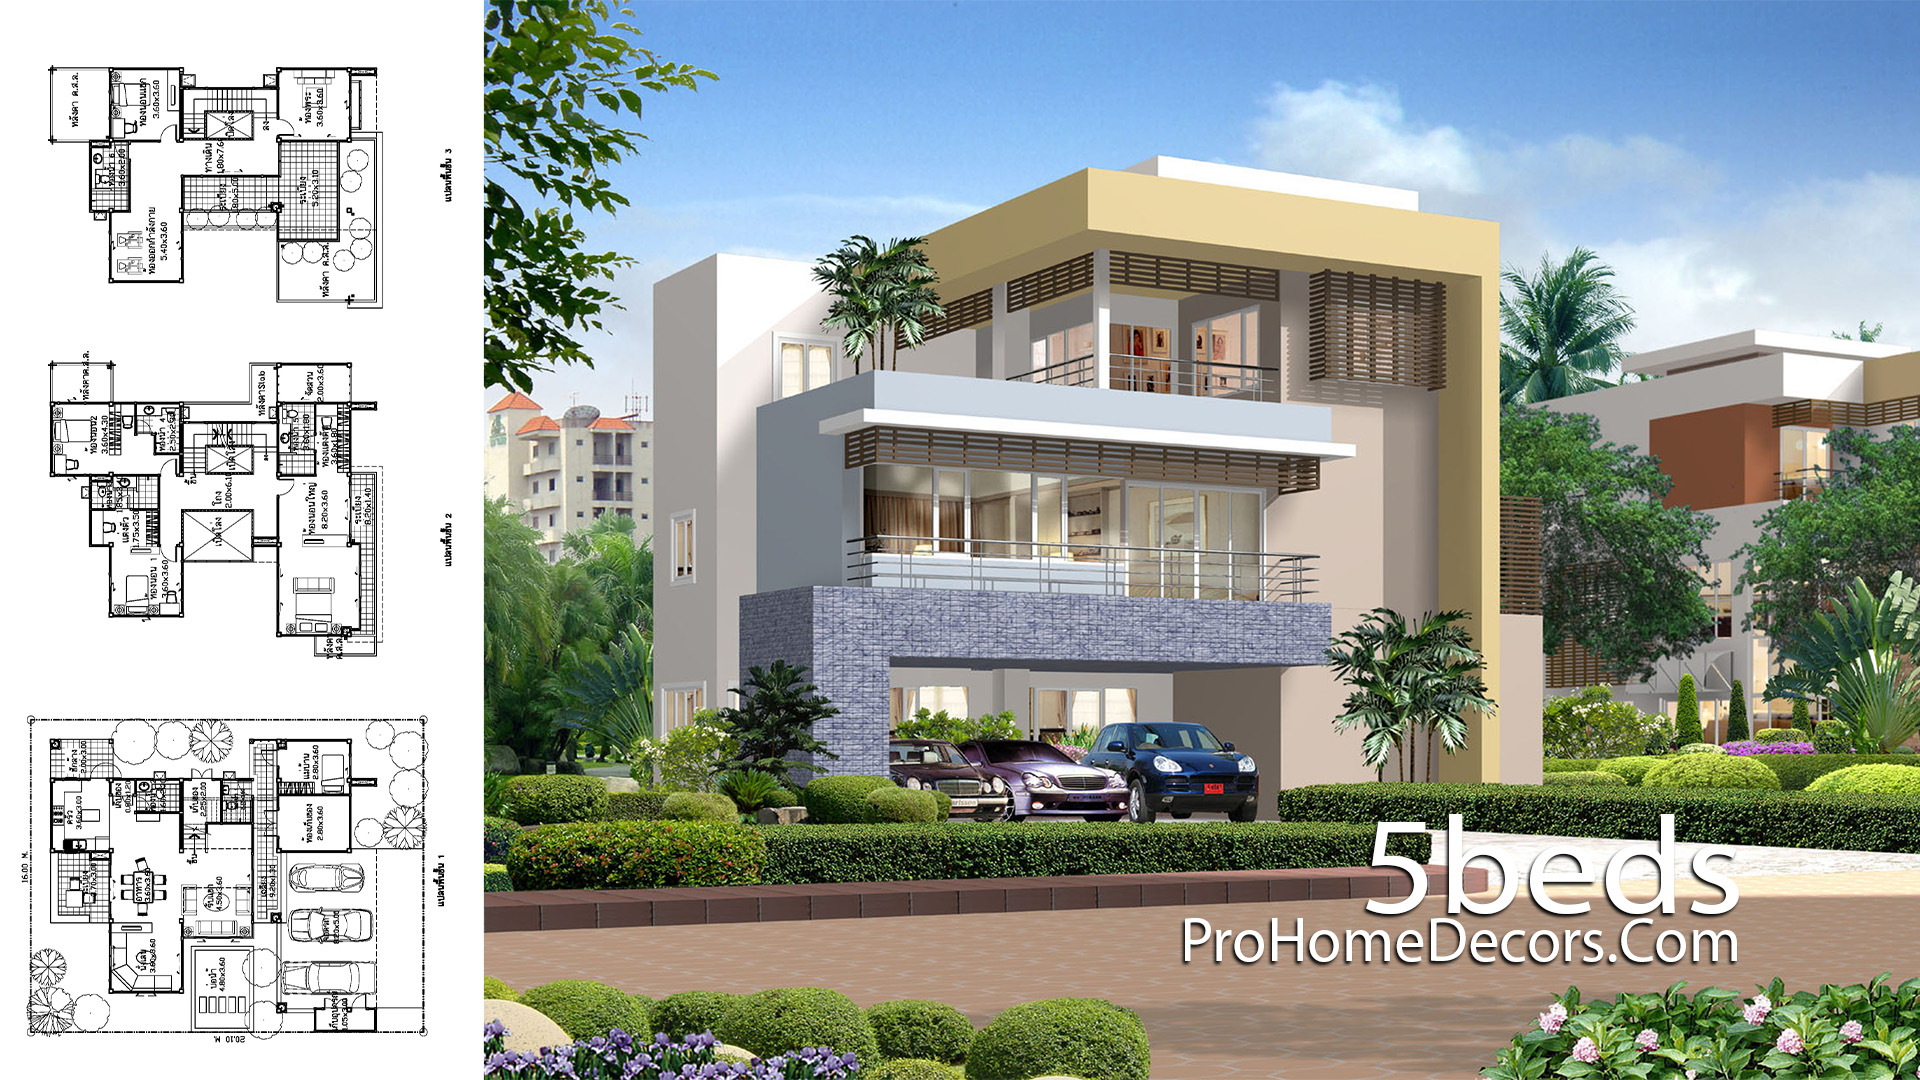 House Design Plot 16x20 with 5 Bedrooms